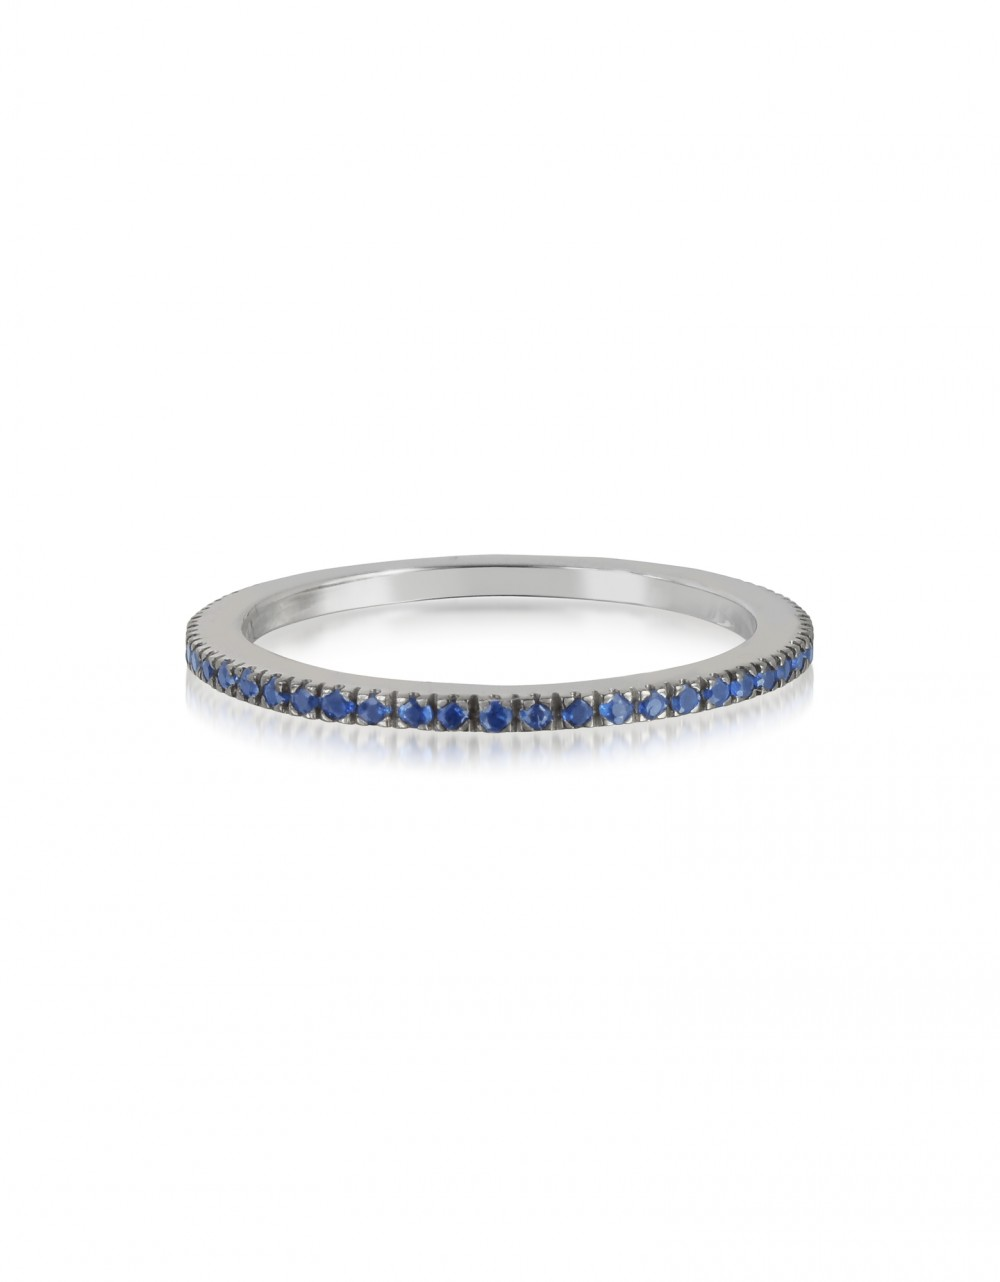 Forzieri Rings Natural Blue Sapphire Eternity Band Ring